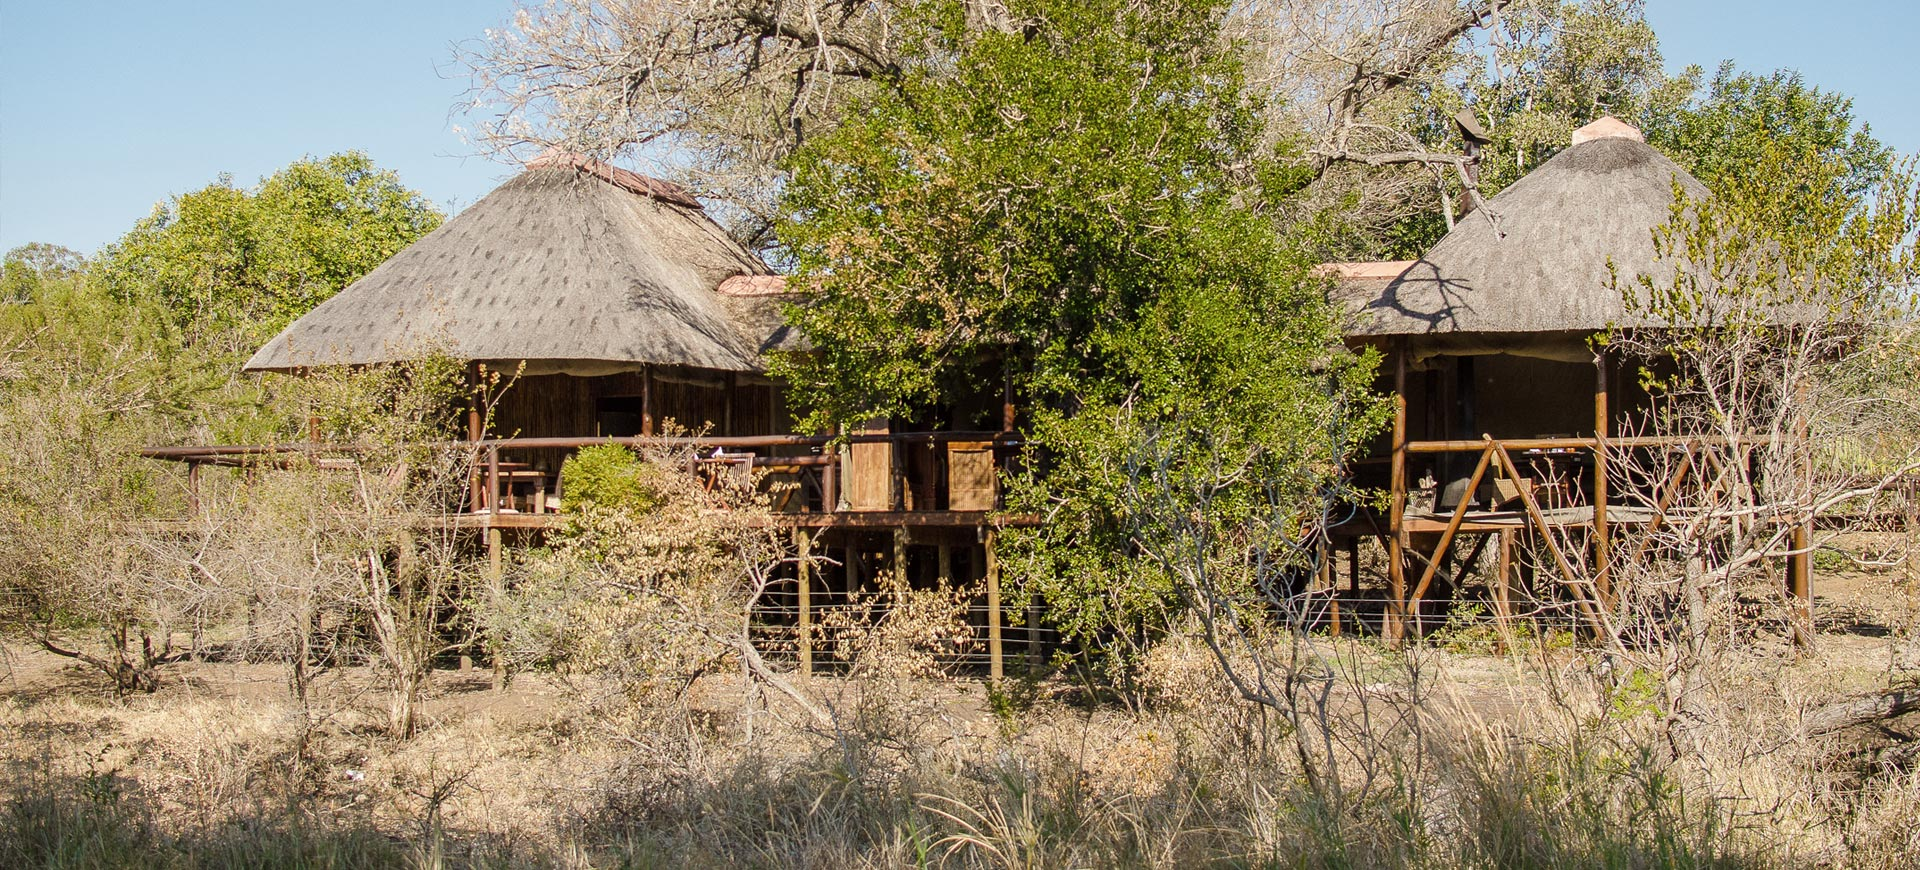 Camp Shonga Safari Lodge